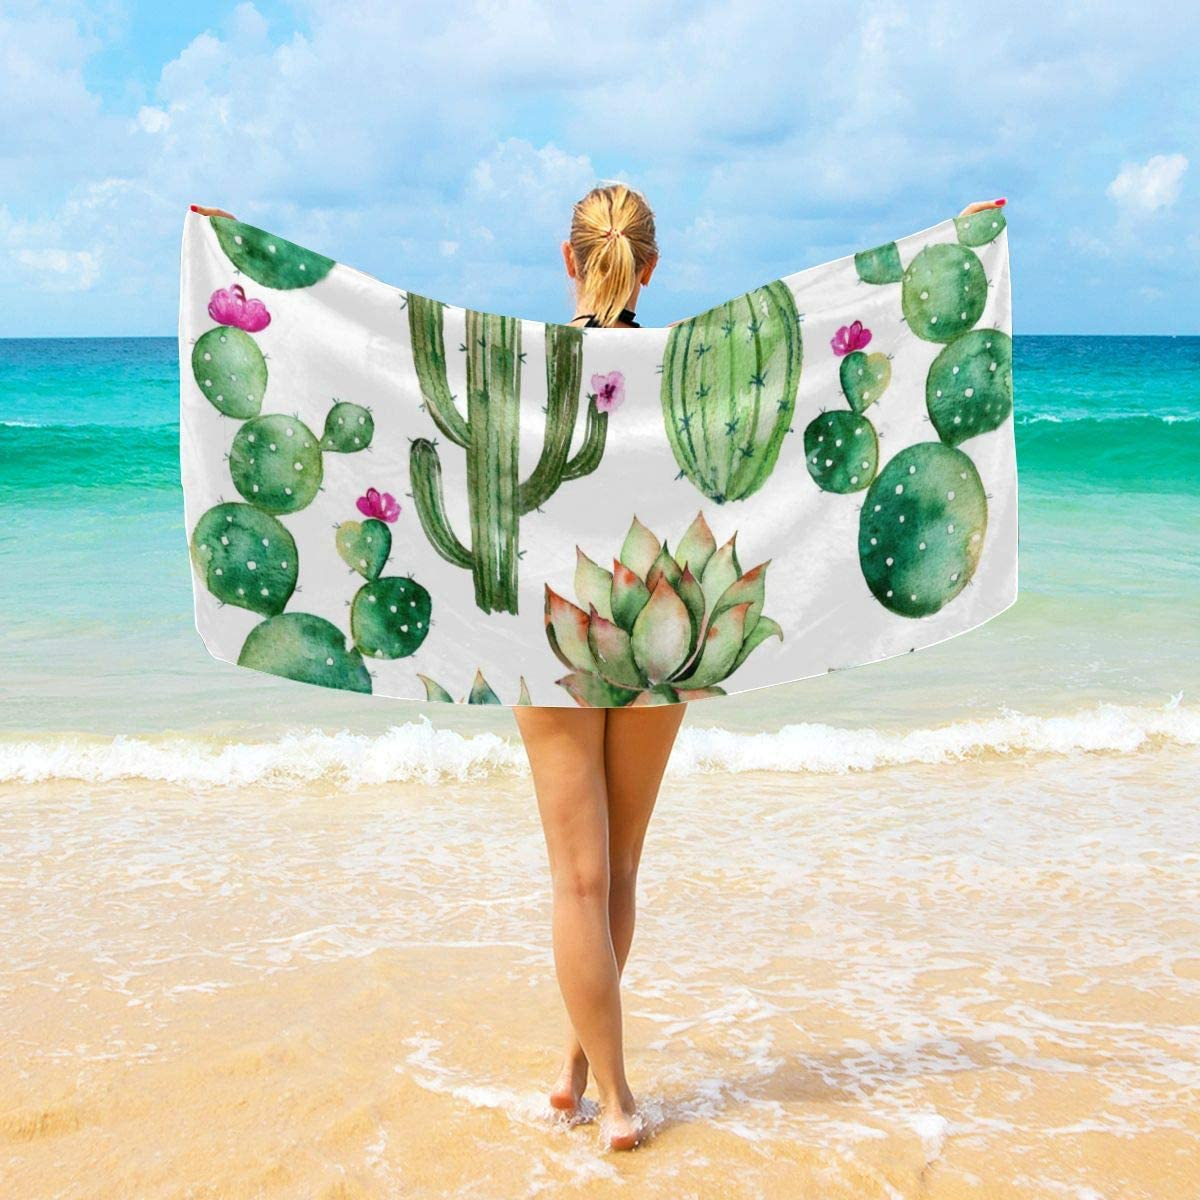 Befectar Watercolor Elements Succulent Plants Cactus Printing Soft Beach Towels for Bath Decorative Guest Towels Hand Towels for Bathroom Spa Gym (32x52 in 40x70 in)